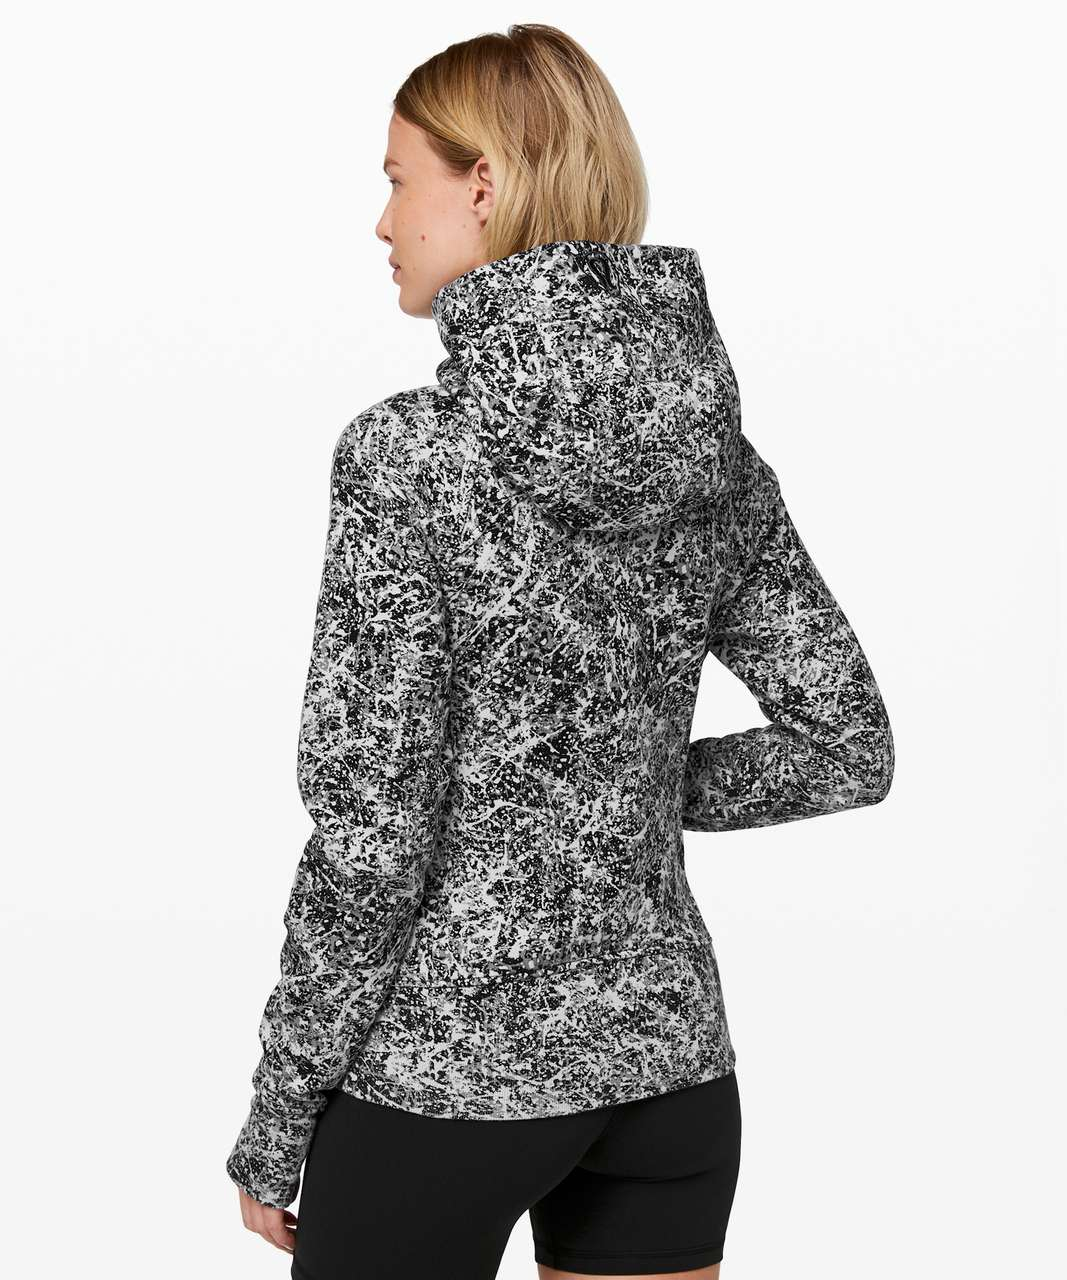 Lululemon Scuba Hoodie *Light Cotton Fleece - Paint Splash Silver Drop Multi